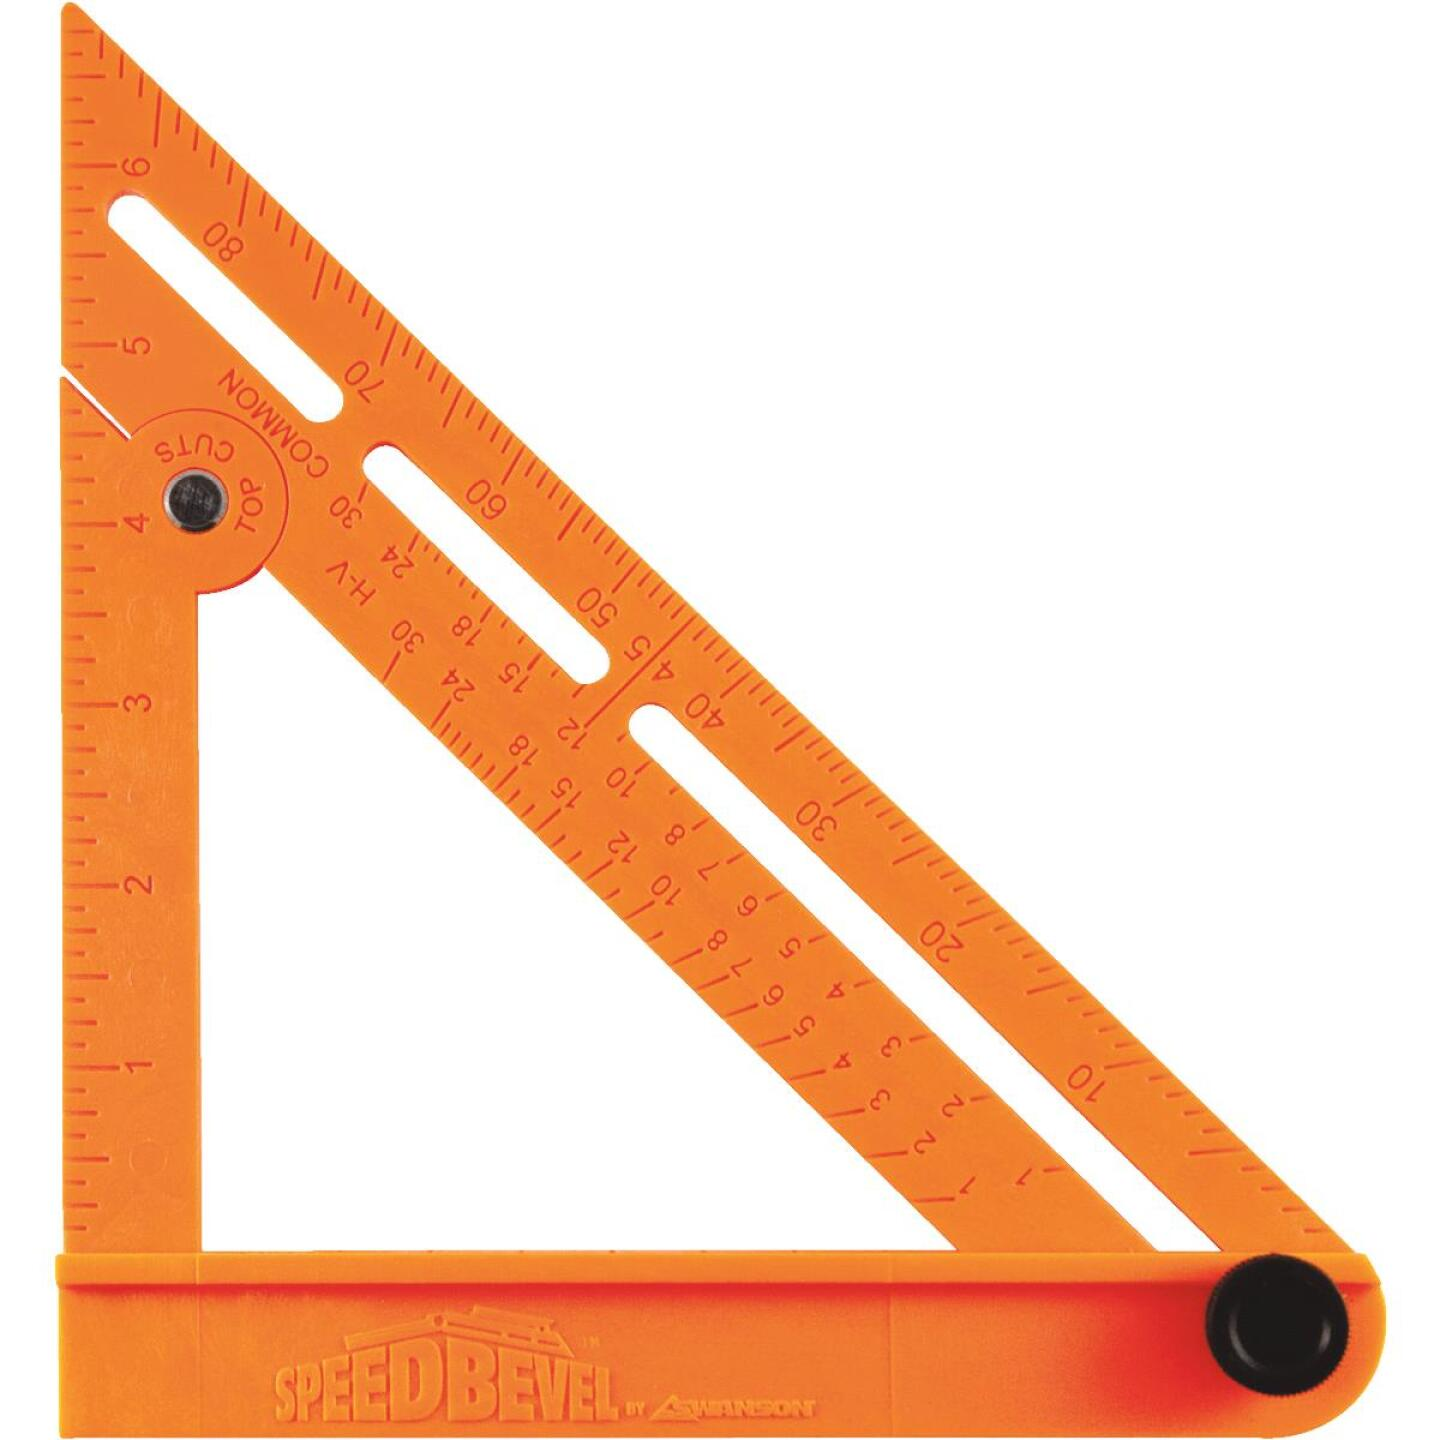 Swanson Speed Bevel 7 In. Plastic Folding Square and T-Bevel Image 1